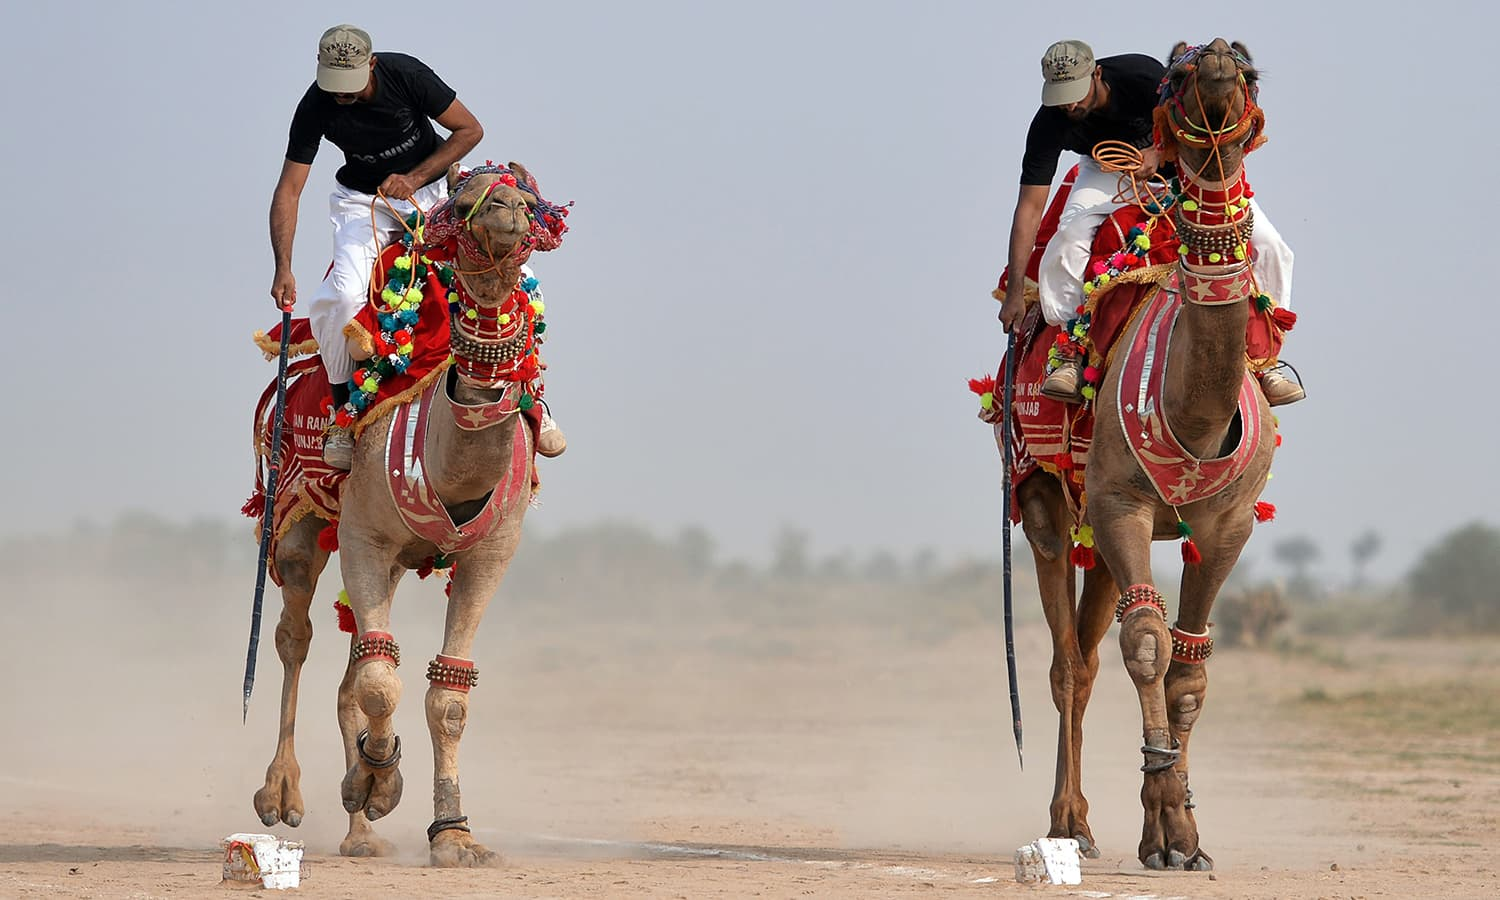 In this photograph taken on November 13, 2015, members of Pakistan Desert Rangers, perform a tent pegging routine in Moj Garh, 100 kilometres east of Bahawalpur in Punjab province. —AFP